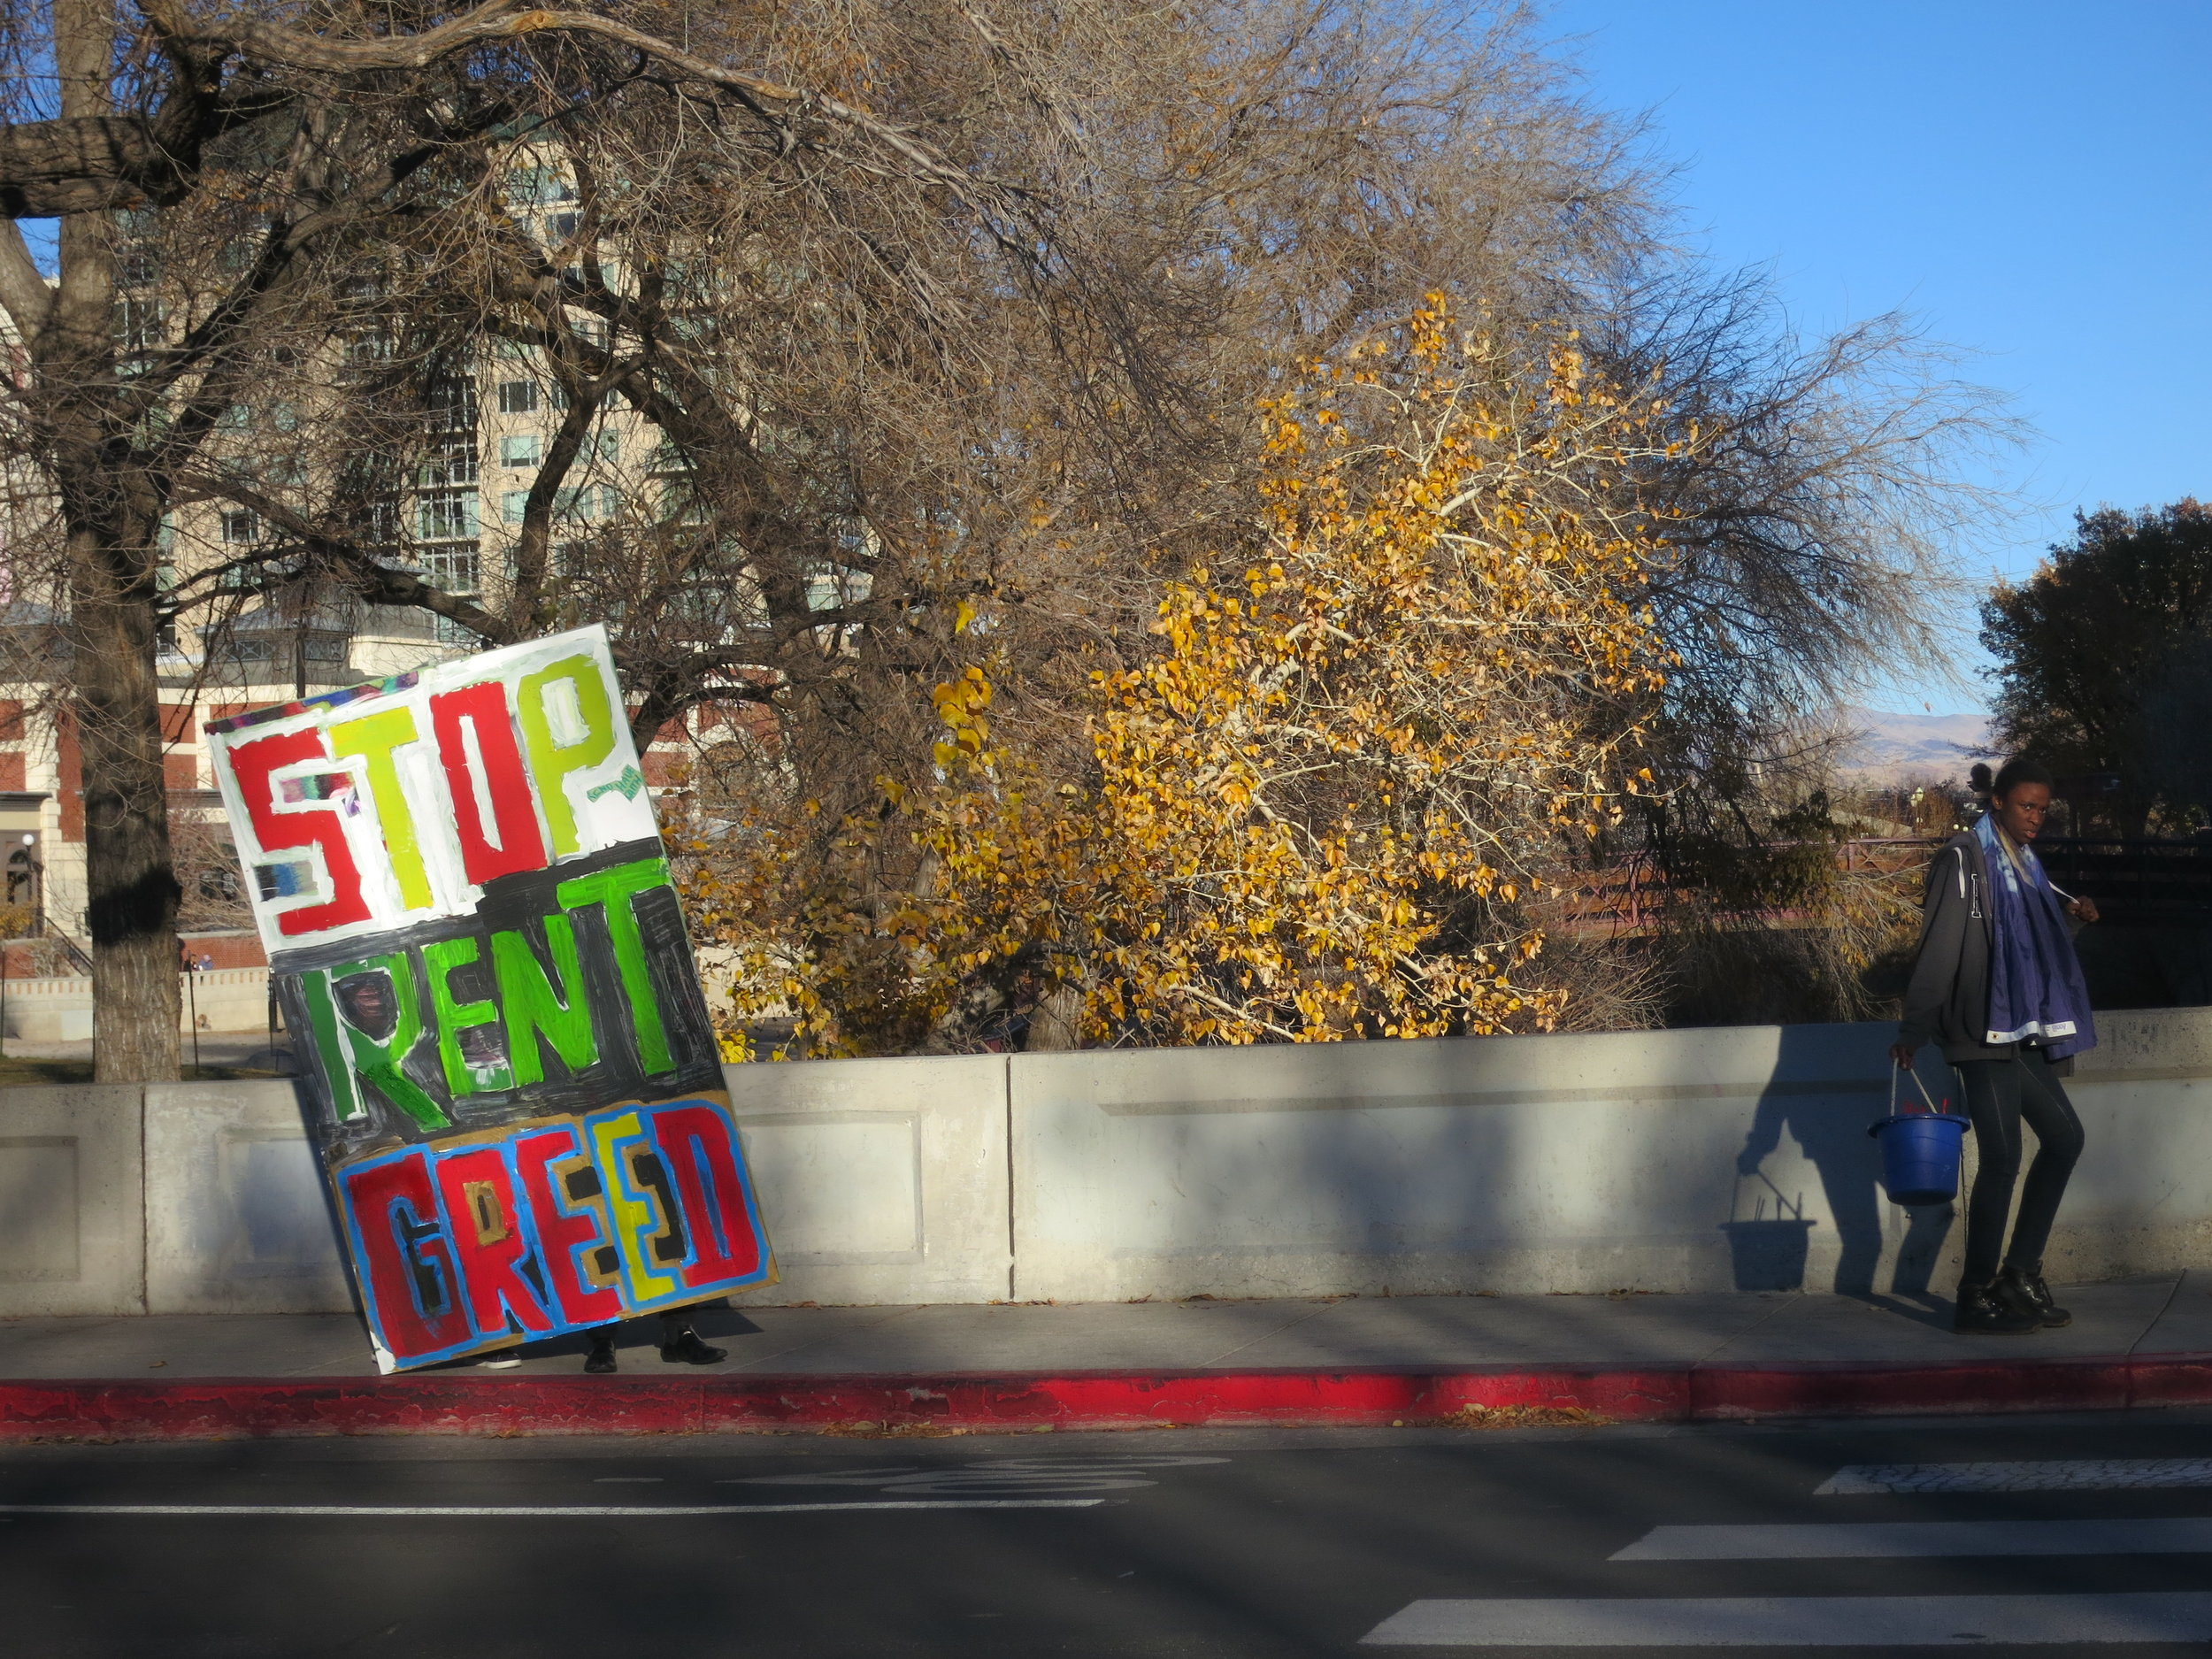 The sign made its way across downtown Reno as kids alternated holding it.